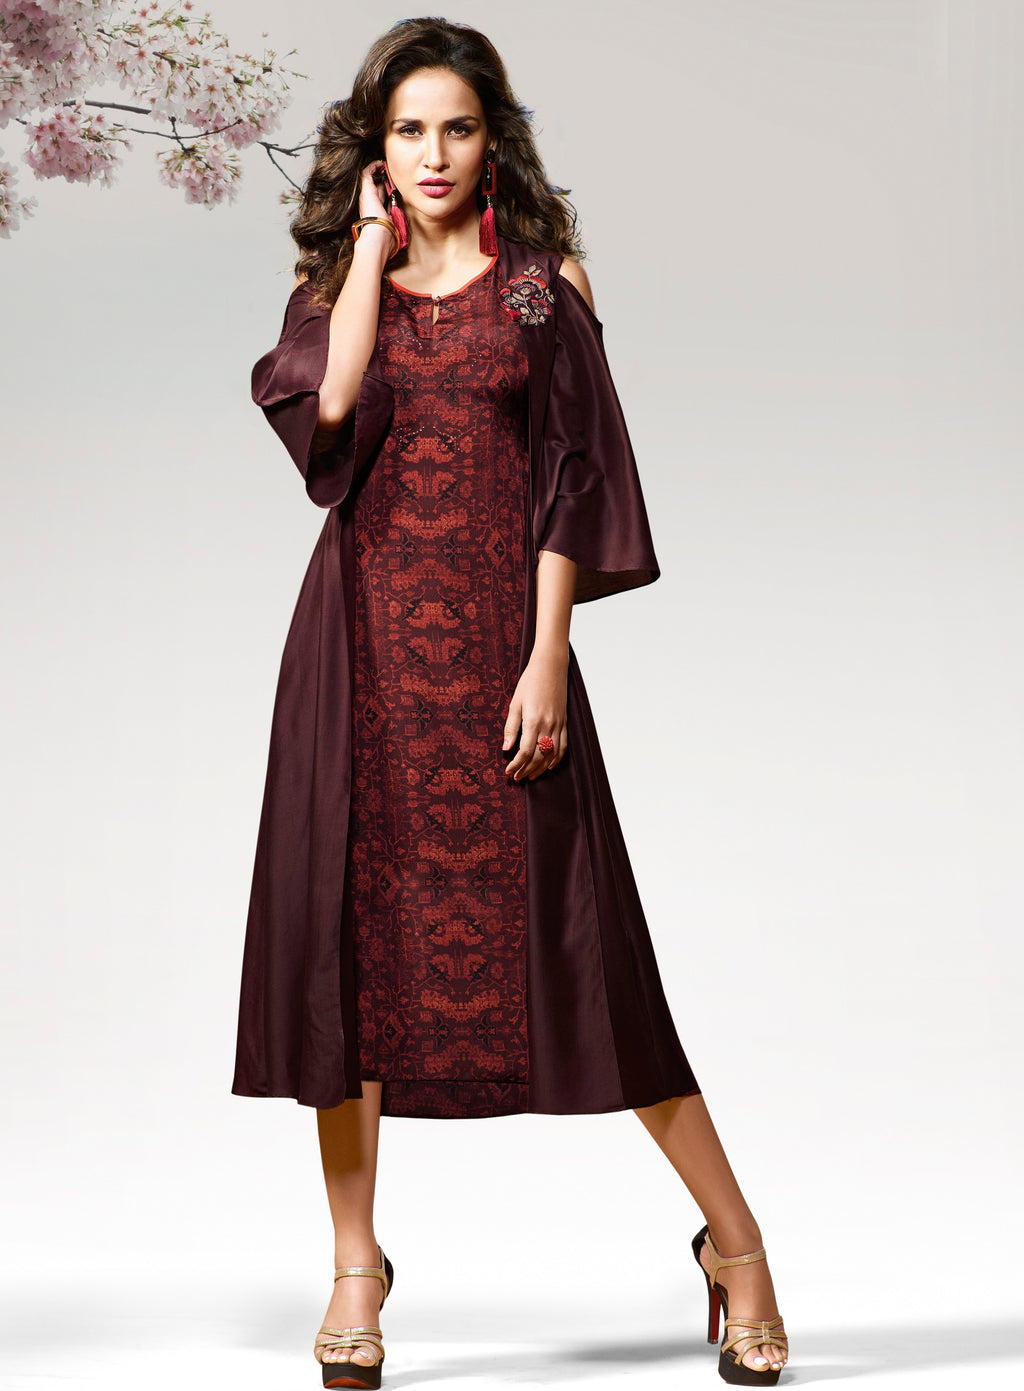 Maroon Color Silk & Crepe Readymade Party Wear Kurtis ( Sizes - 38,40) Vinay TumbaTwinkle Catlog SJ-10458